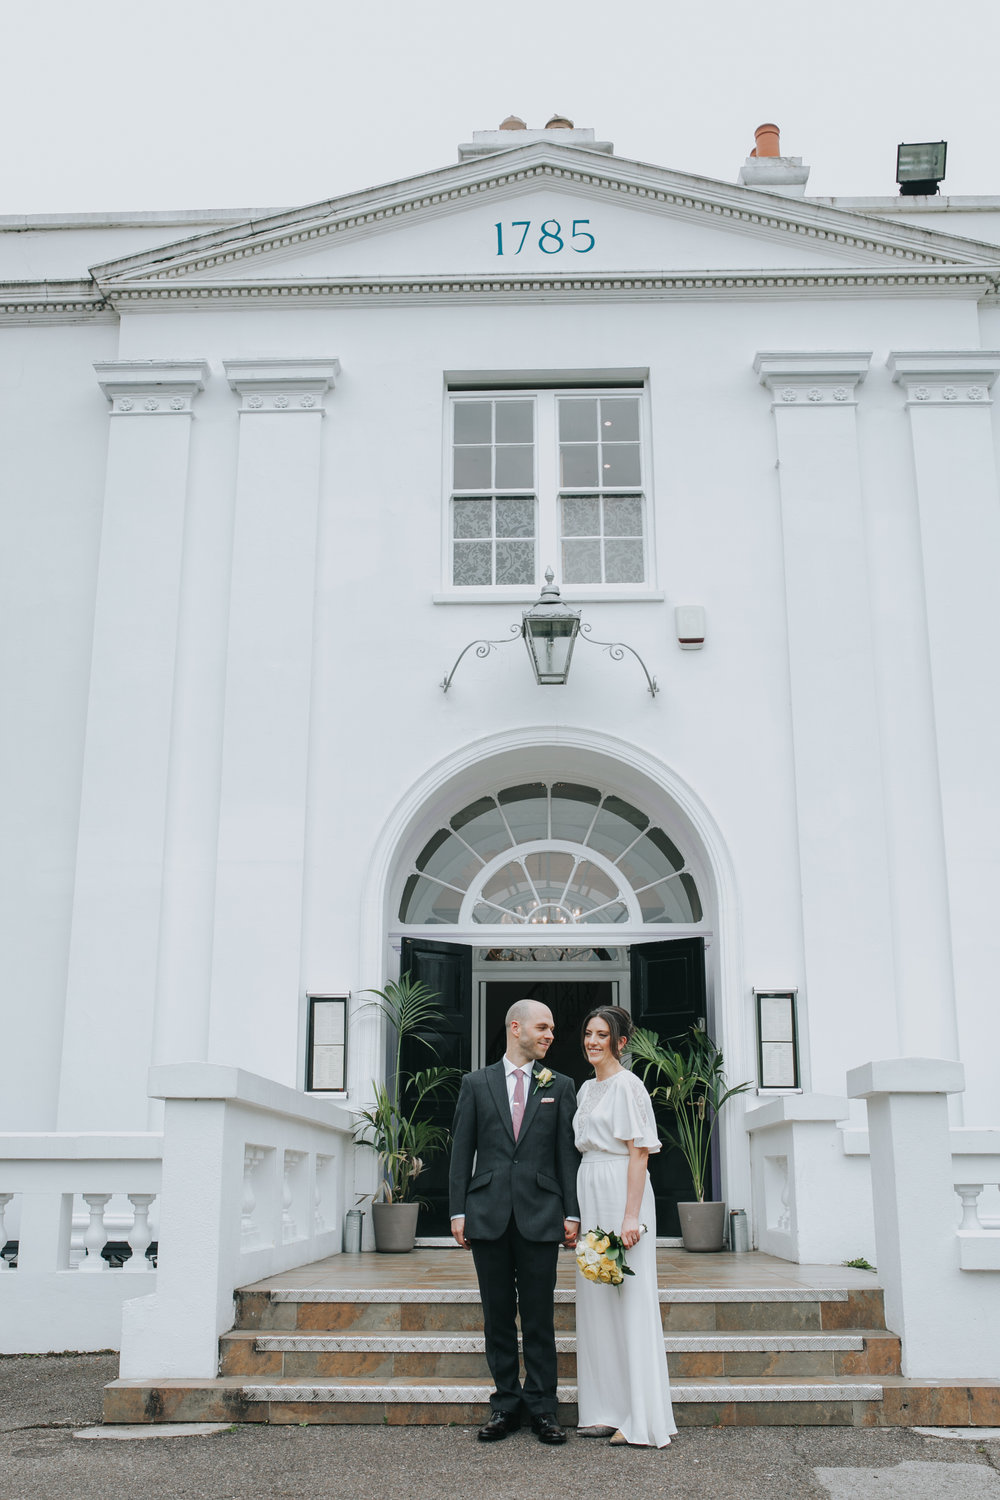 203 Belair House wedding portraits London reportage photographer.jpg